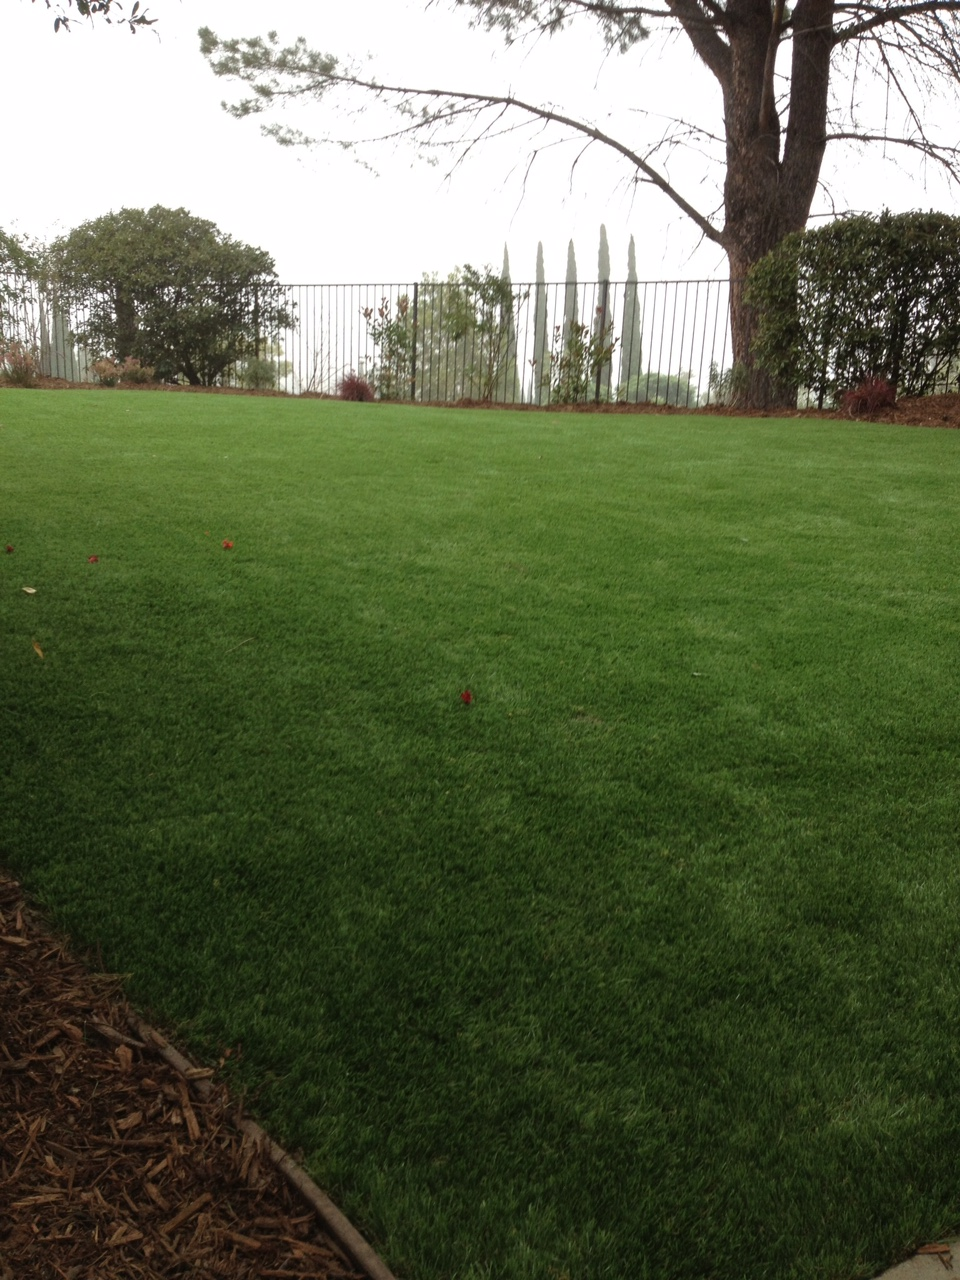 Artificial turf install process - finished, looks real! and very nice